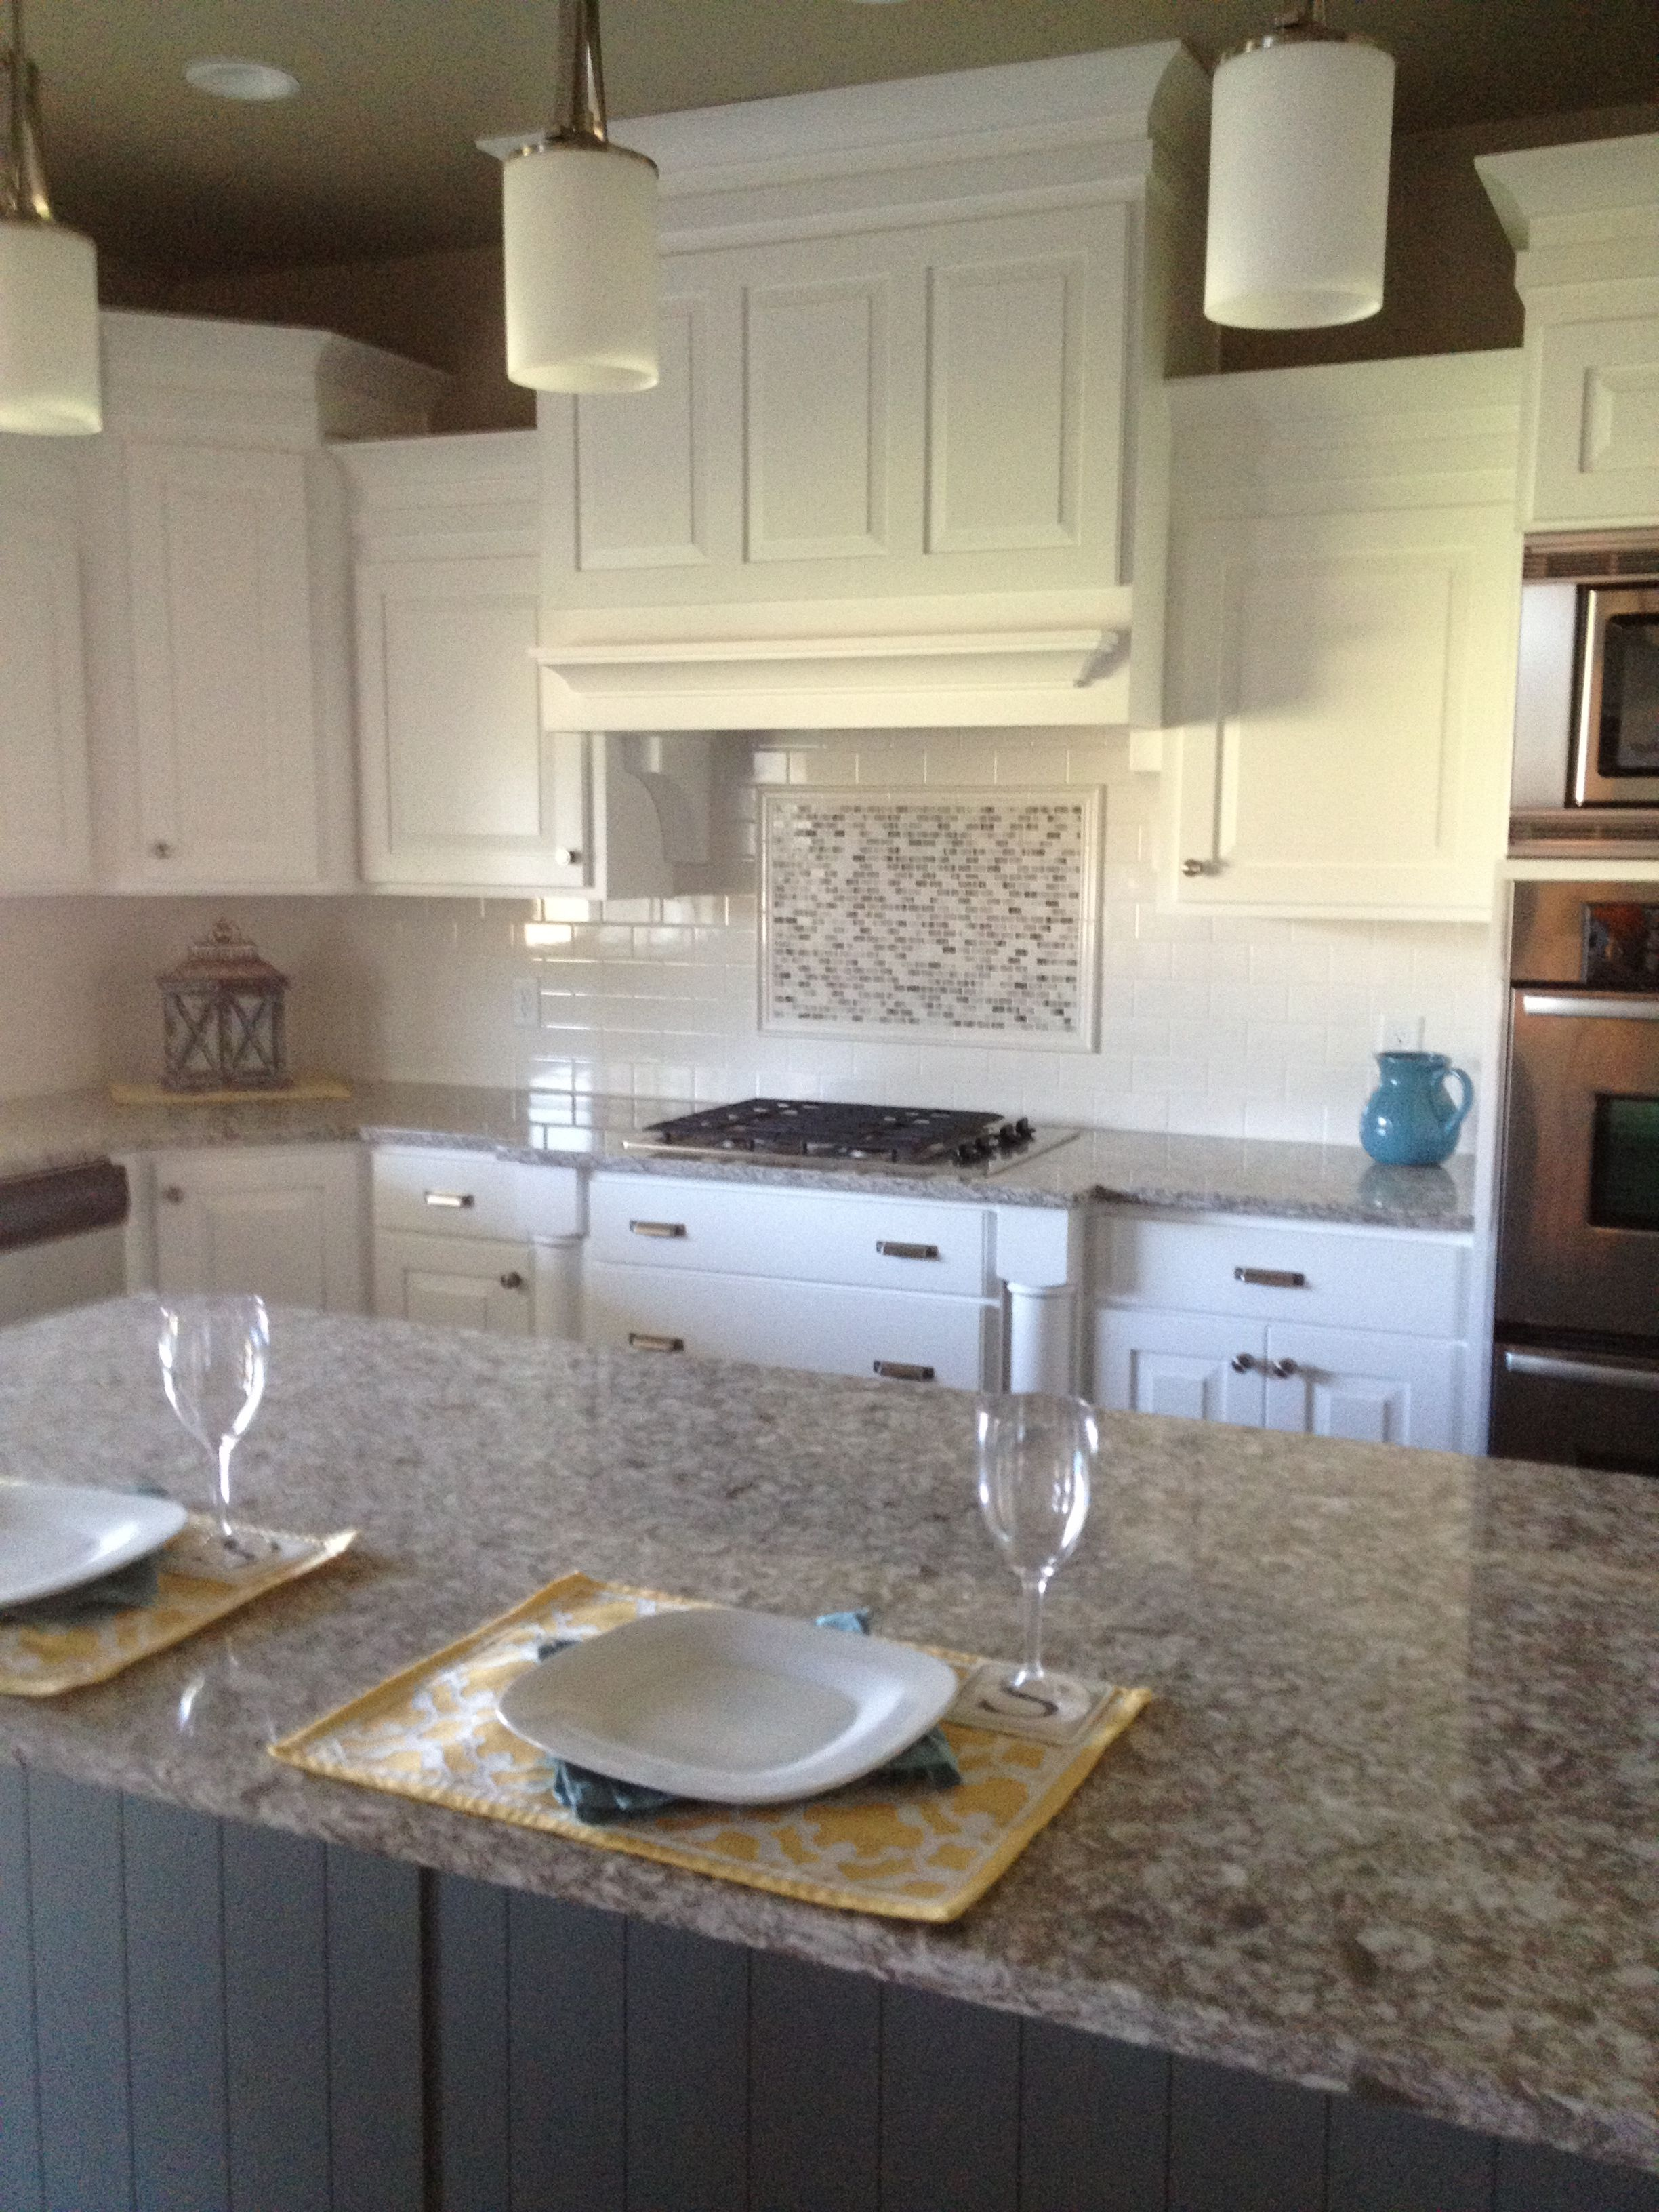 Beautiful Kitchen With White Subway Tiles As A Backsplash With An